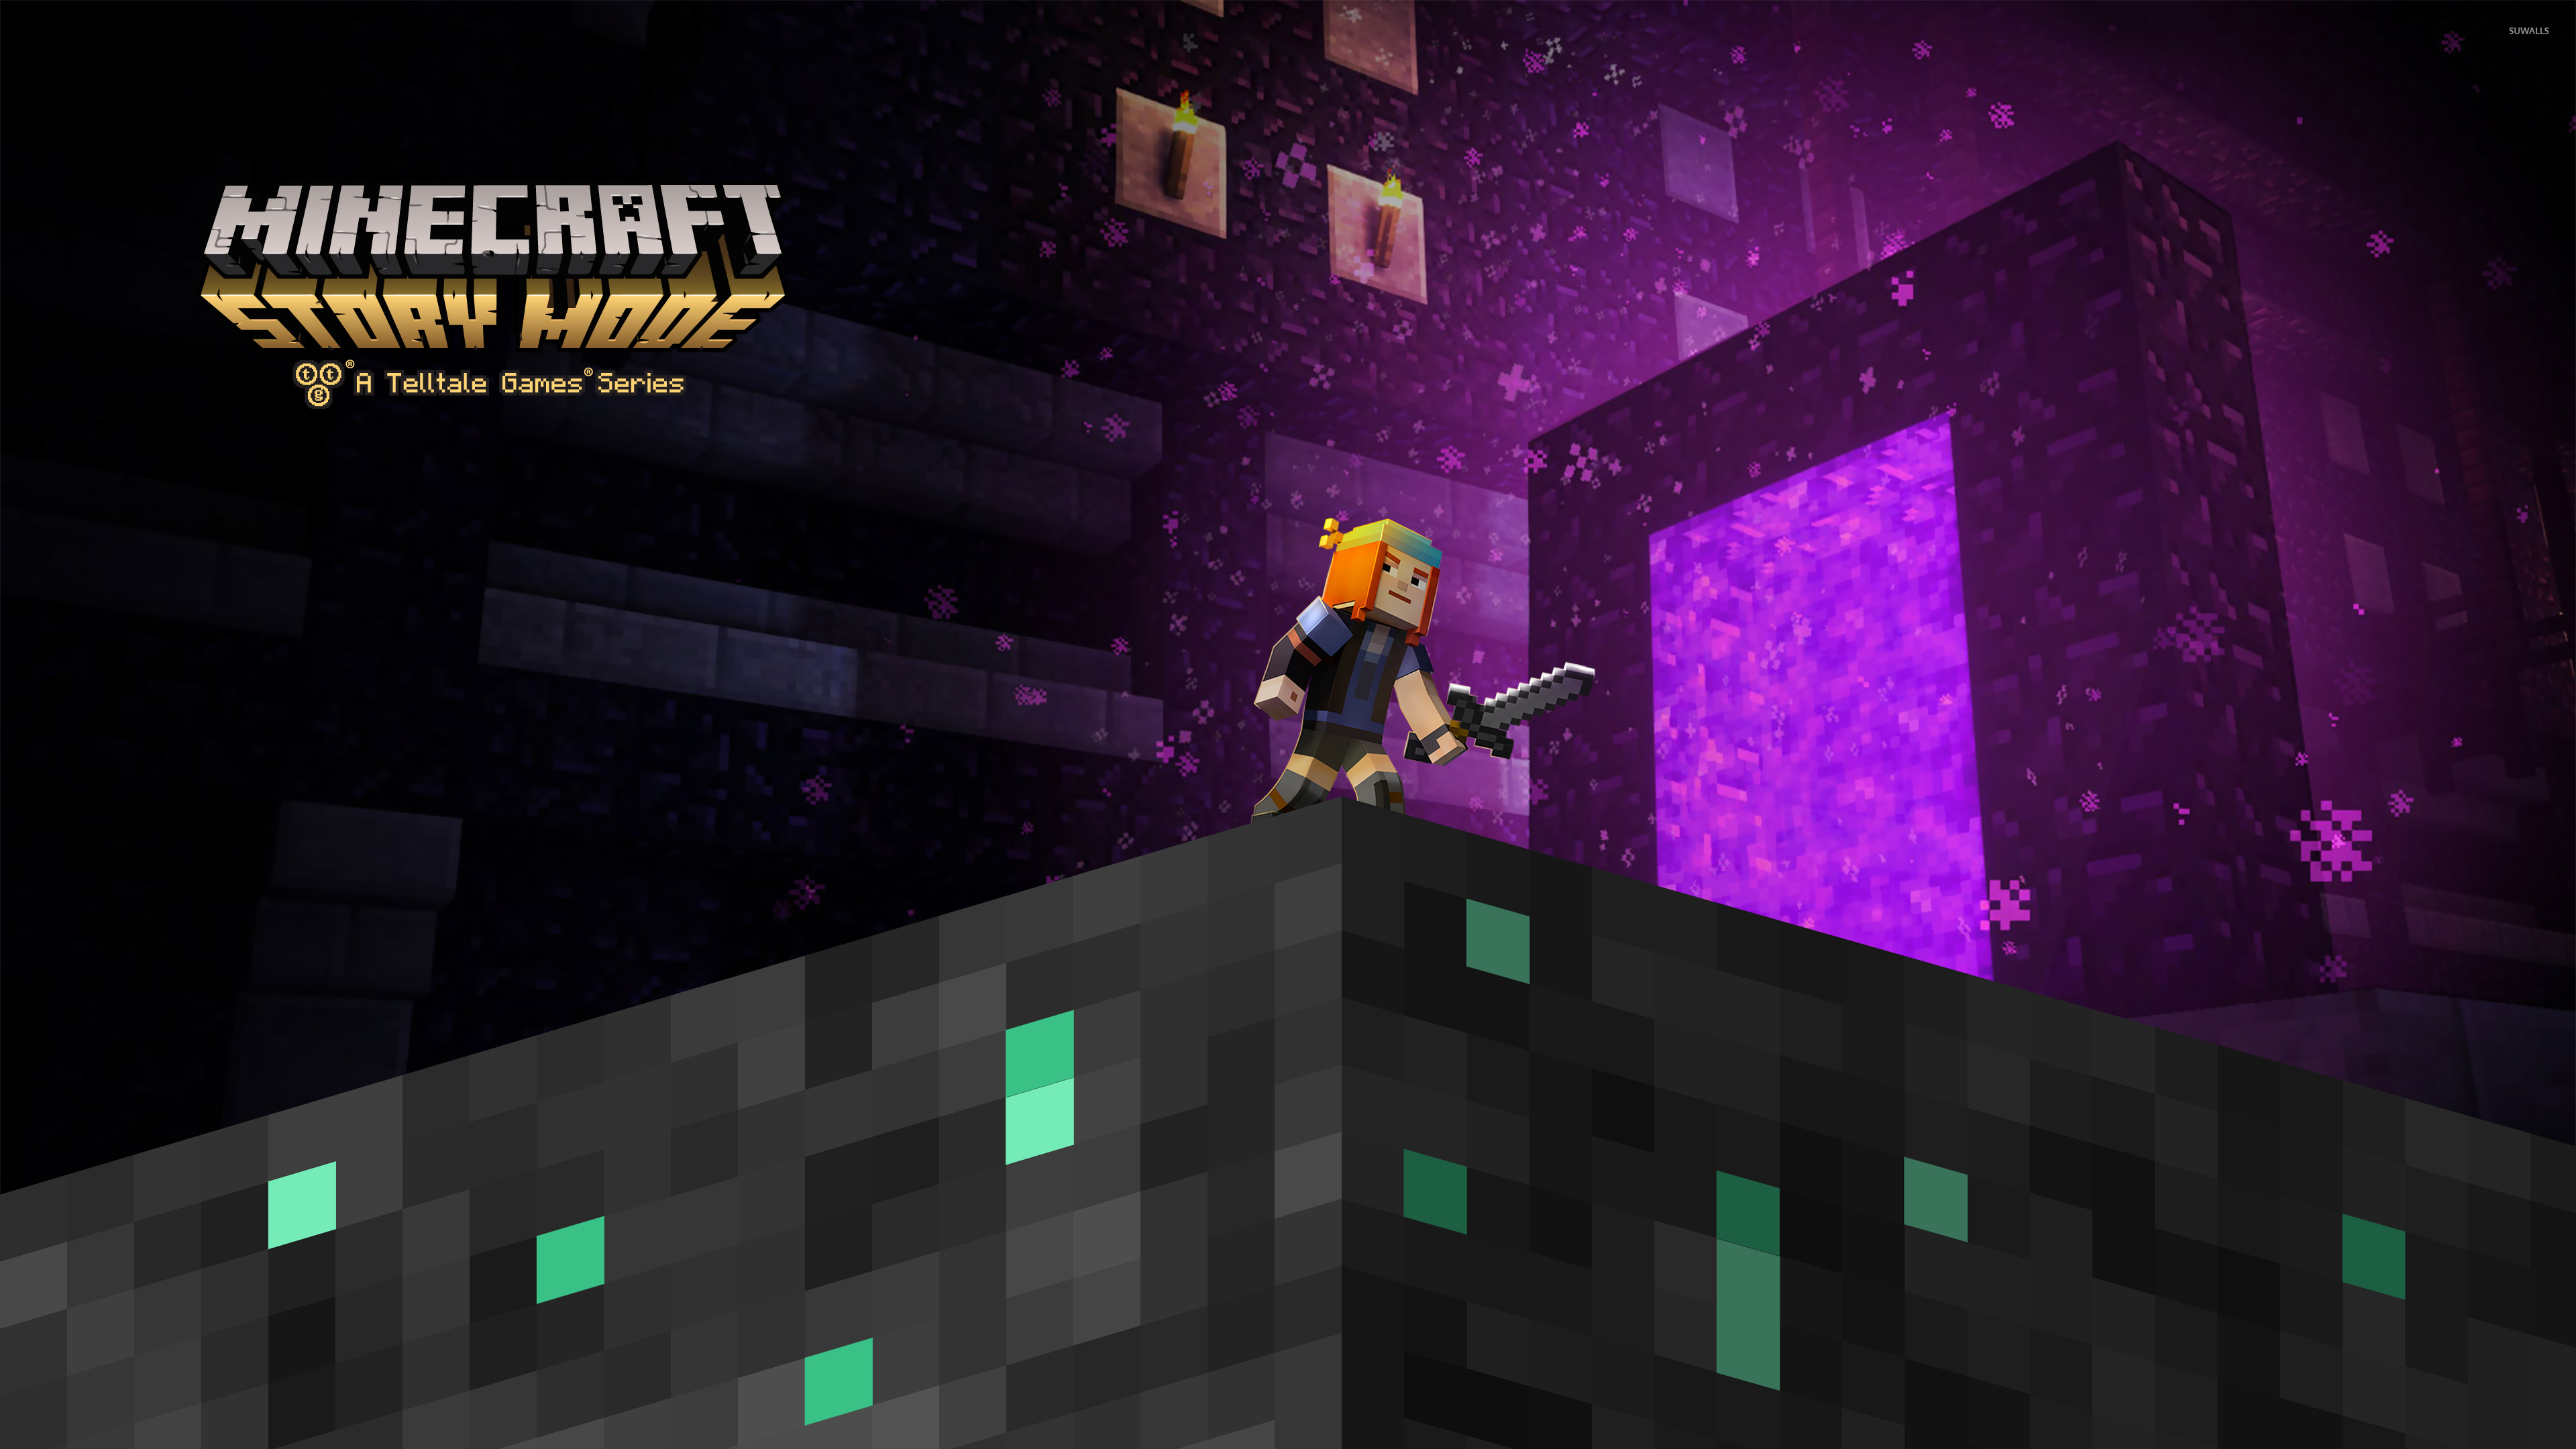 Amazing Wallpaper Minecraft Action - petra-in-jesse-in-minecraft-story-mode-50061-3840x2160  2018_162164.jpg